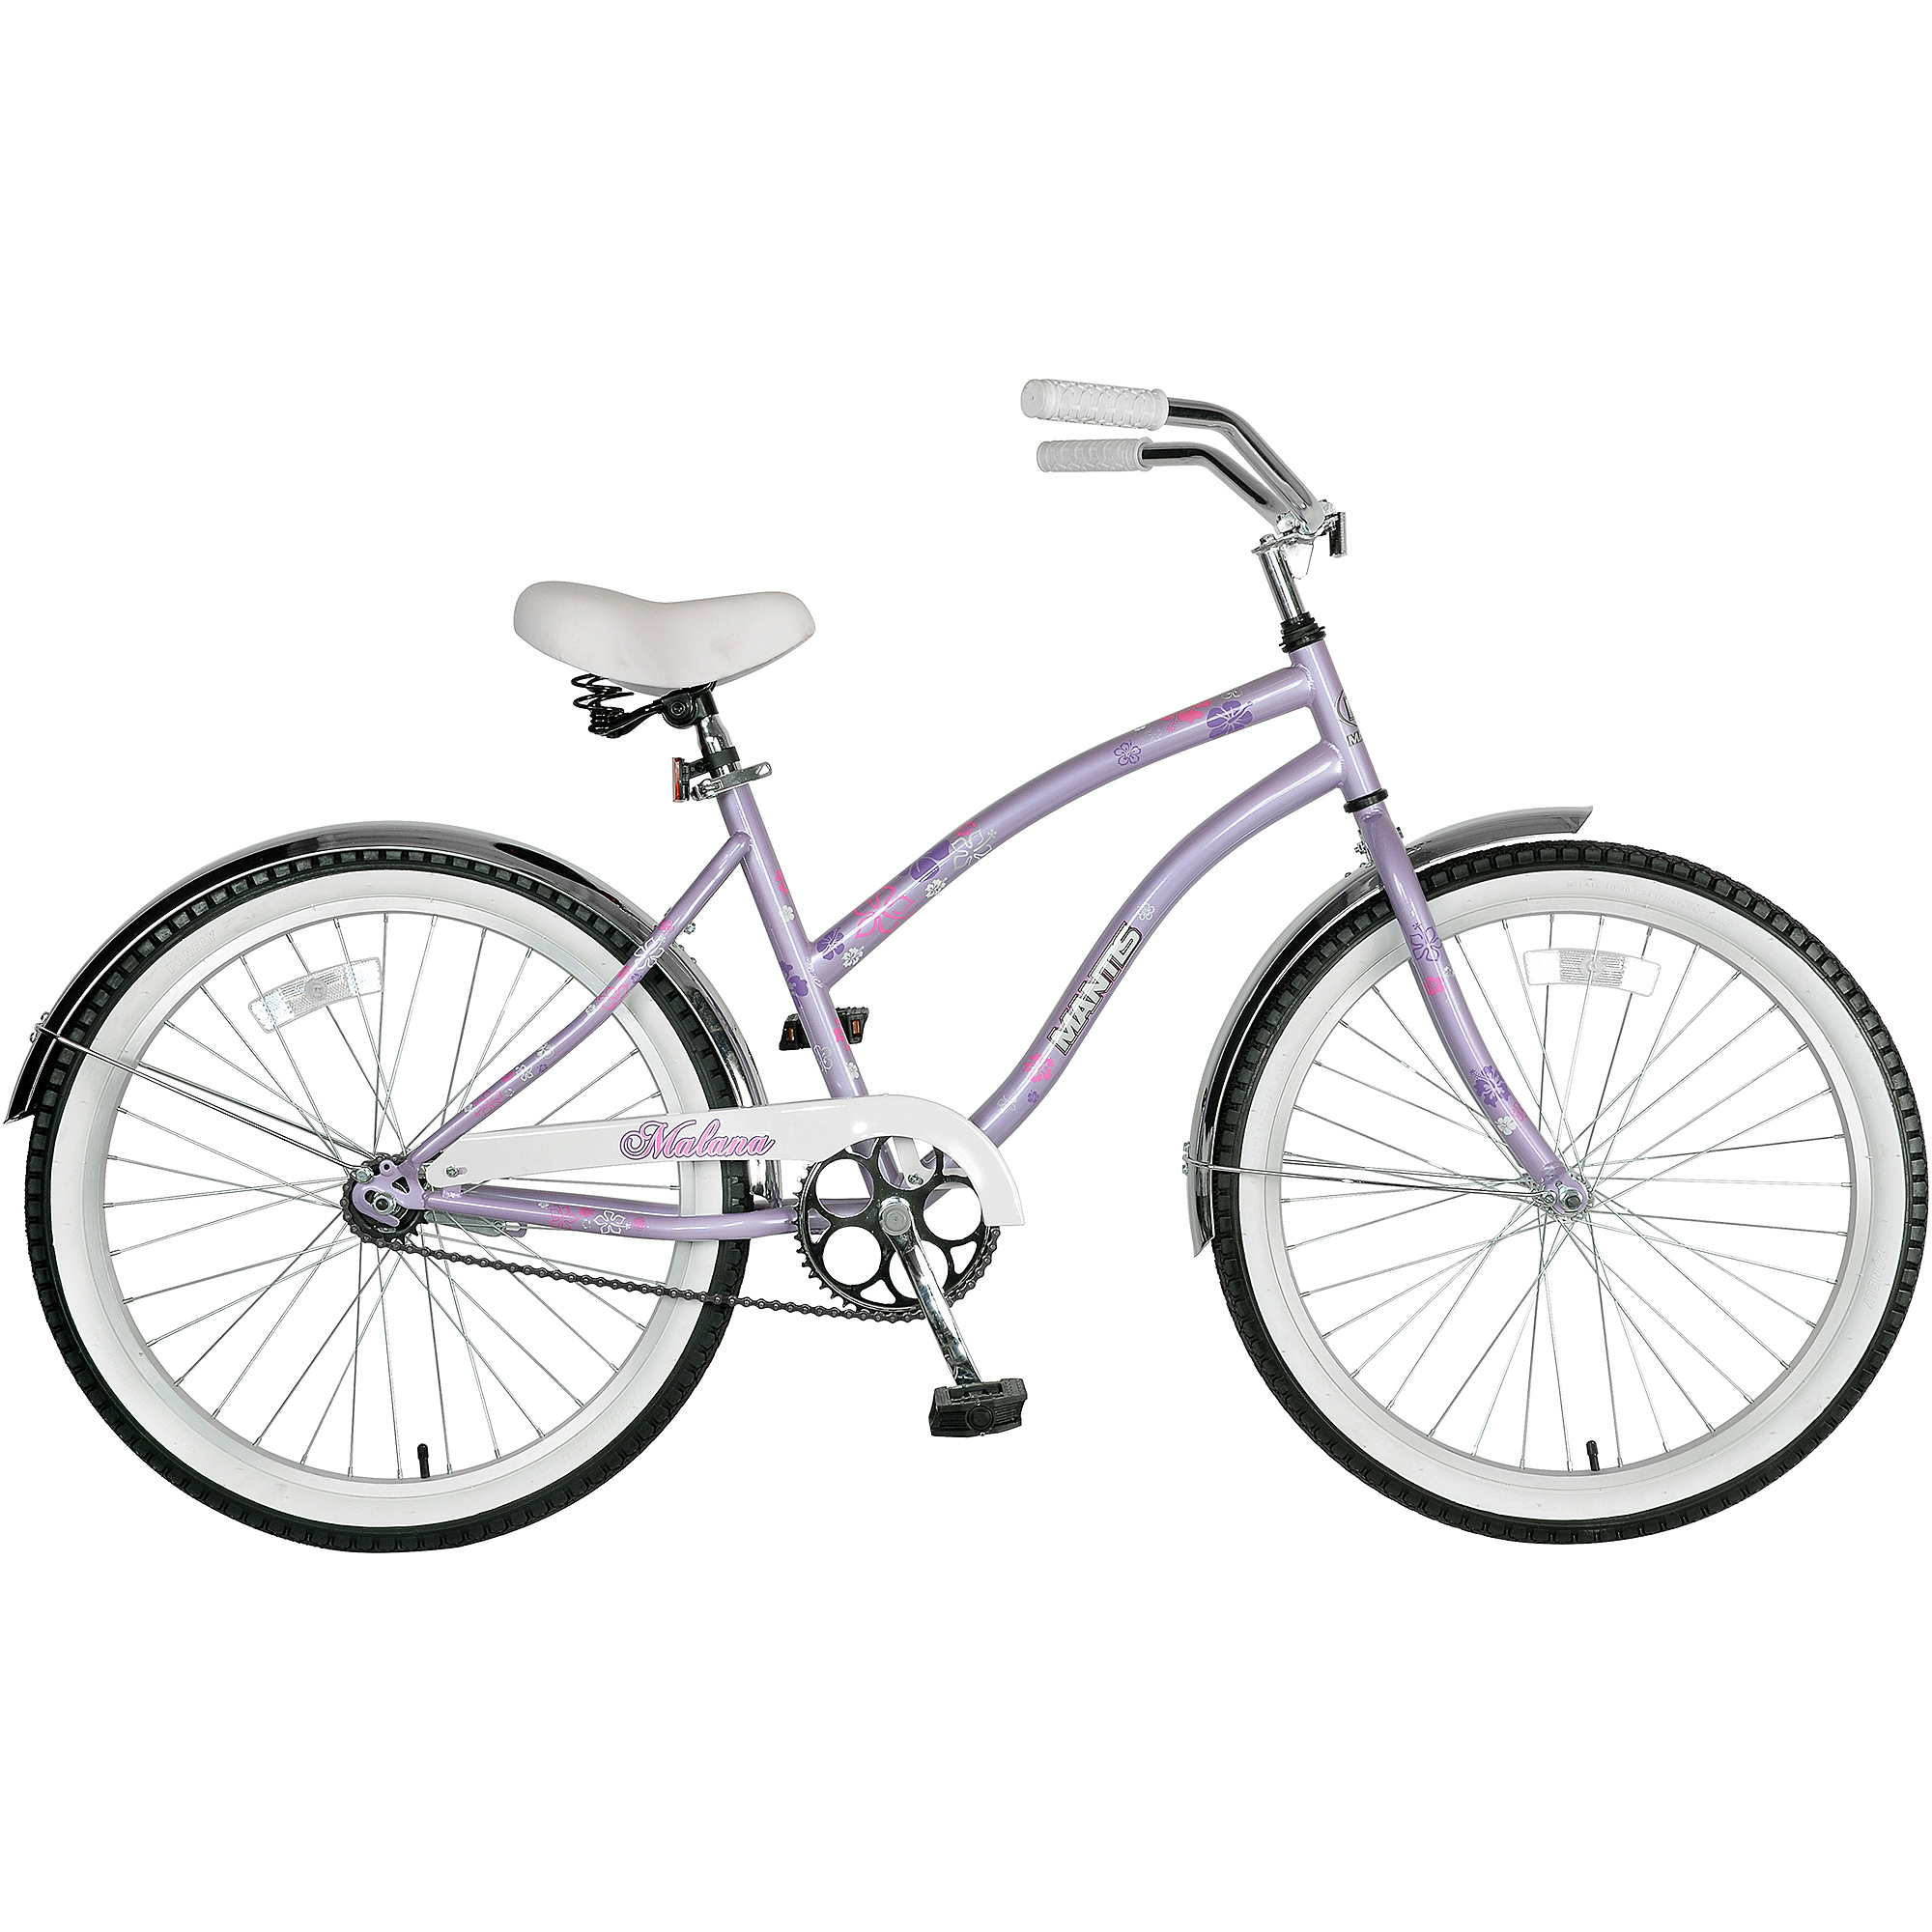 "Mantis Malana 24"" Cruiser Bike"